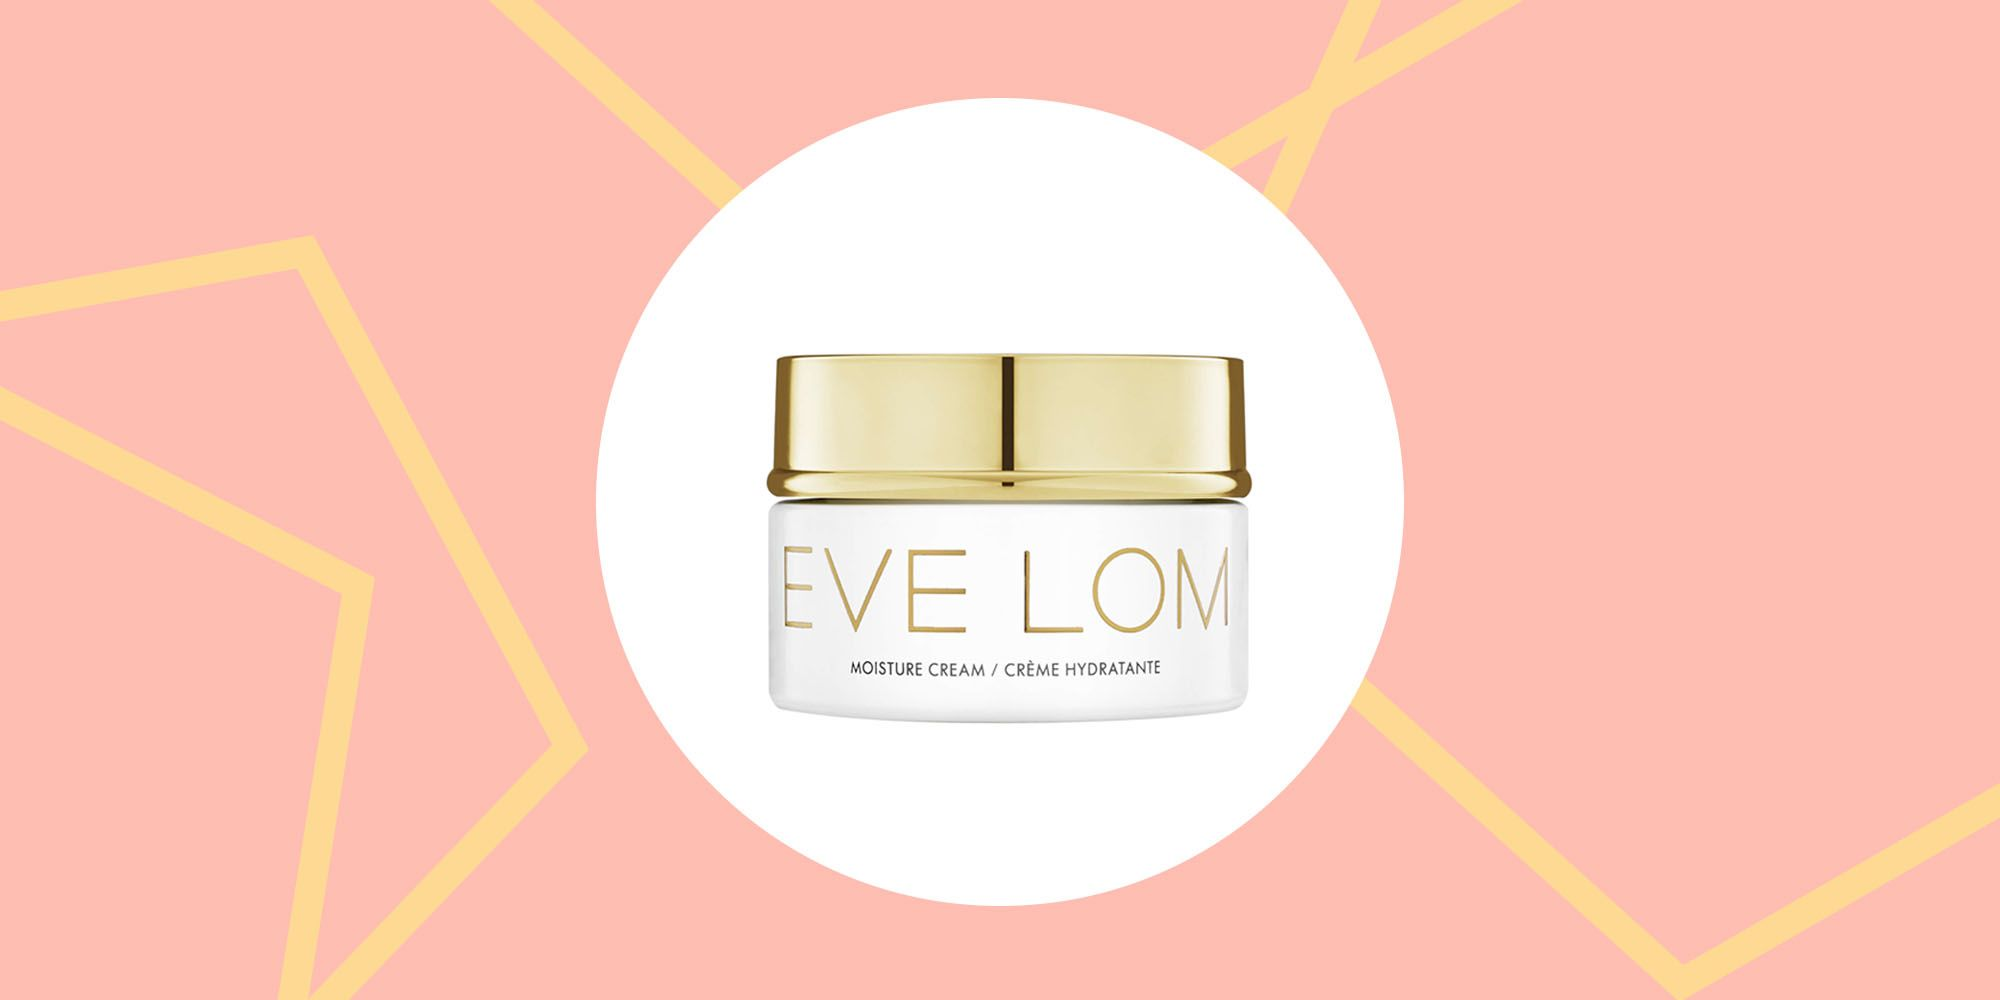 eve lom moisturiser - women's health uk